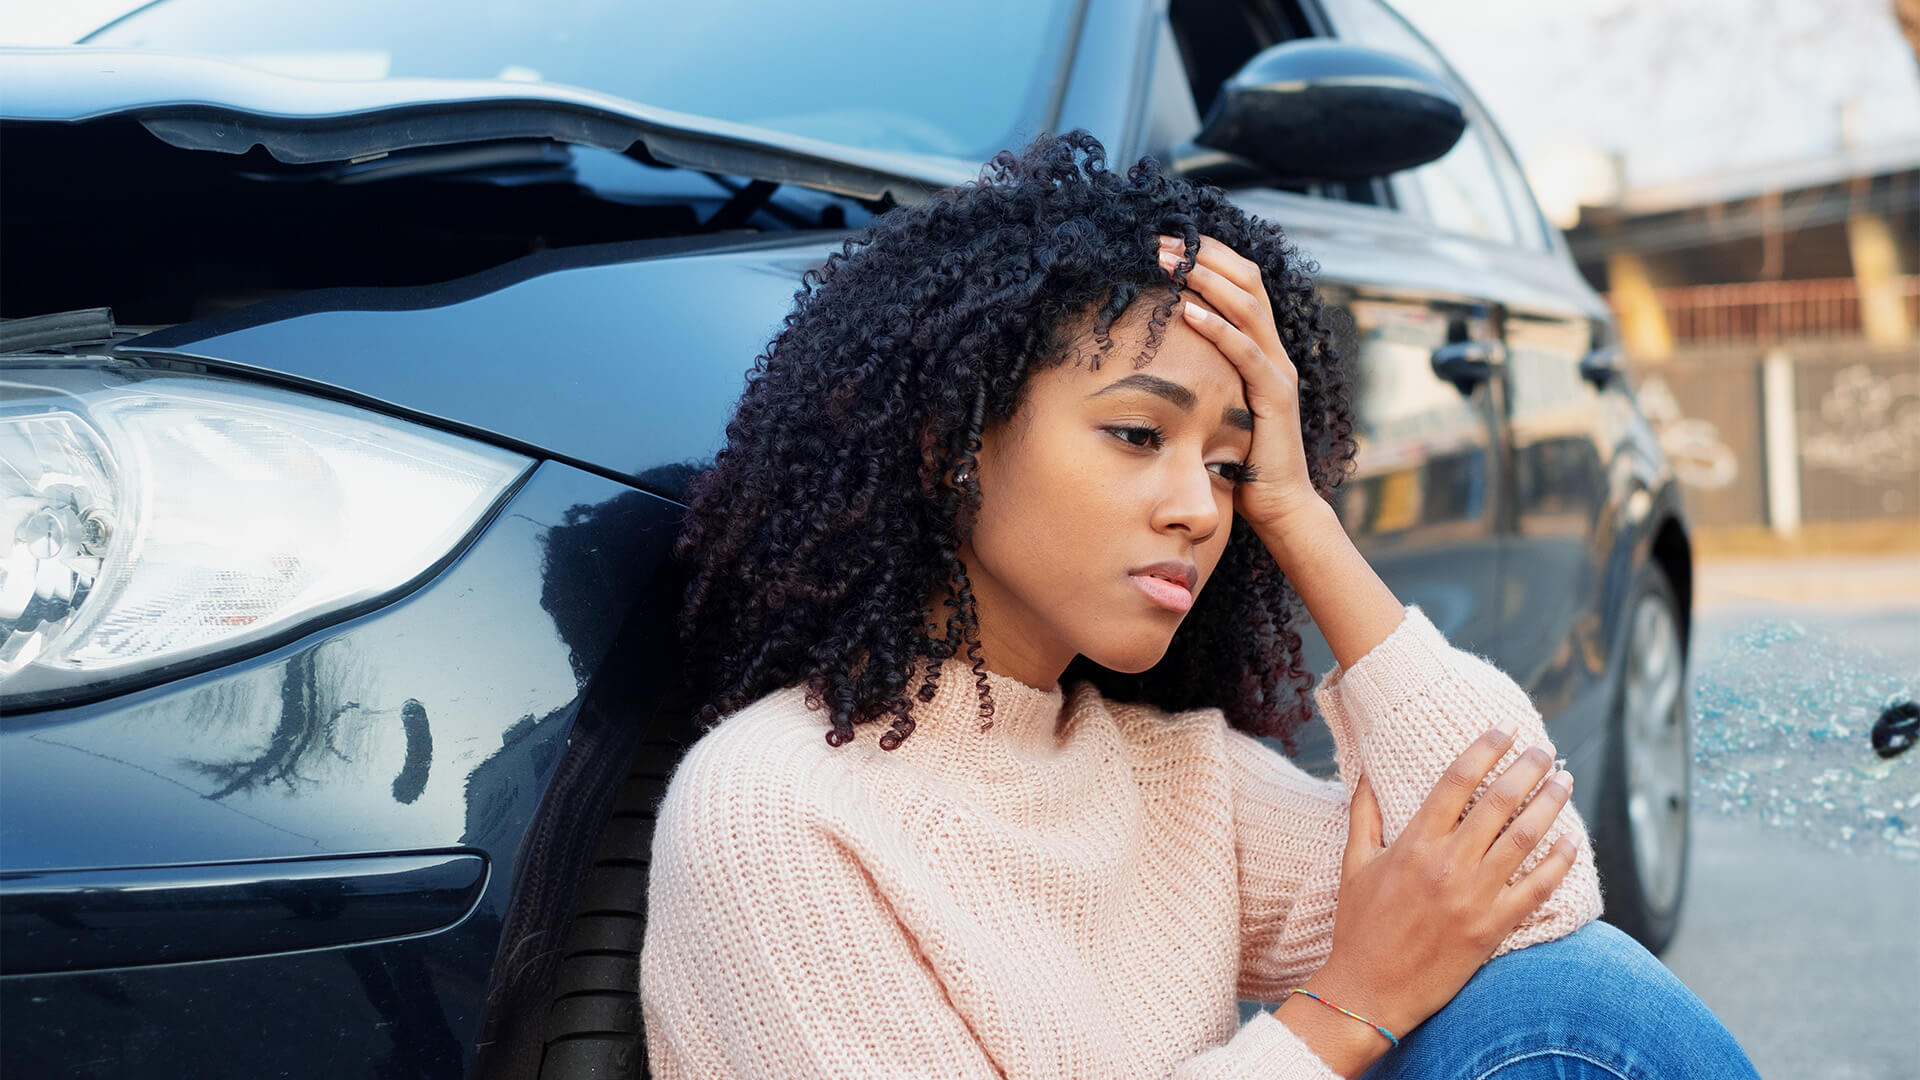 One Atlanta Car Accident Lawyer is Helping Victims Get The Right Healthcare